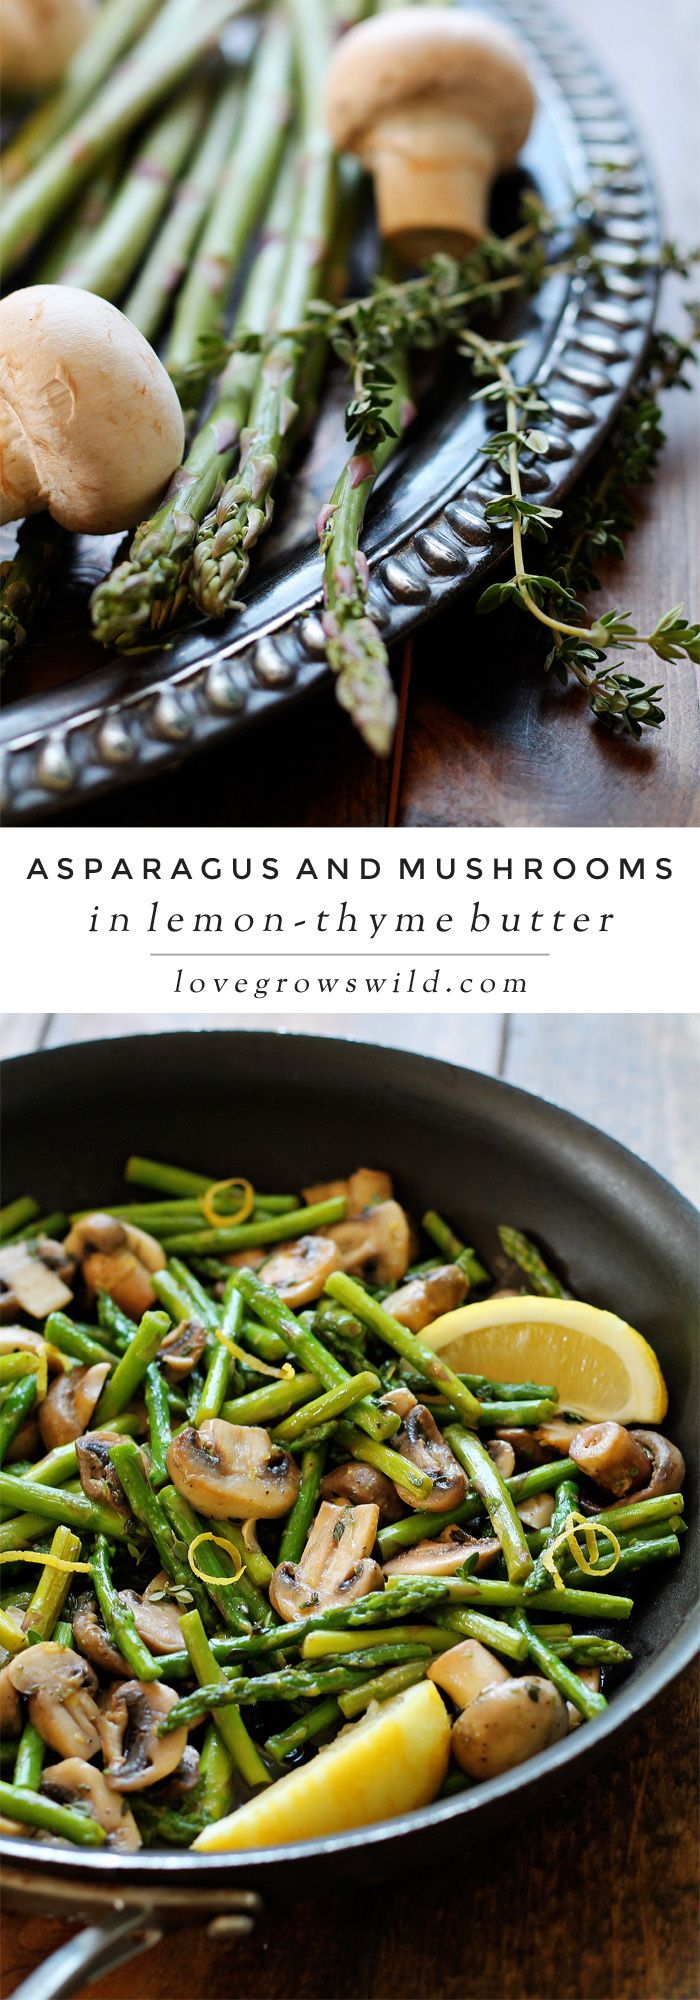 Asparagus and Mushrooms in Lemon-Thyme Butter ~ a delicious and healthy side dish that pairs well with just about any meal! | LoveGrowsWild.com